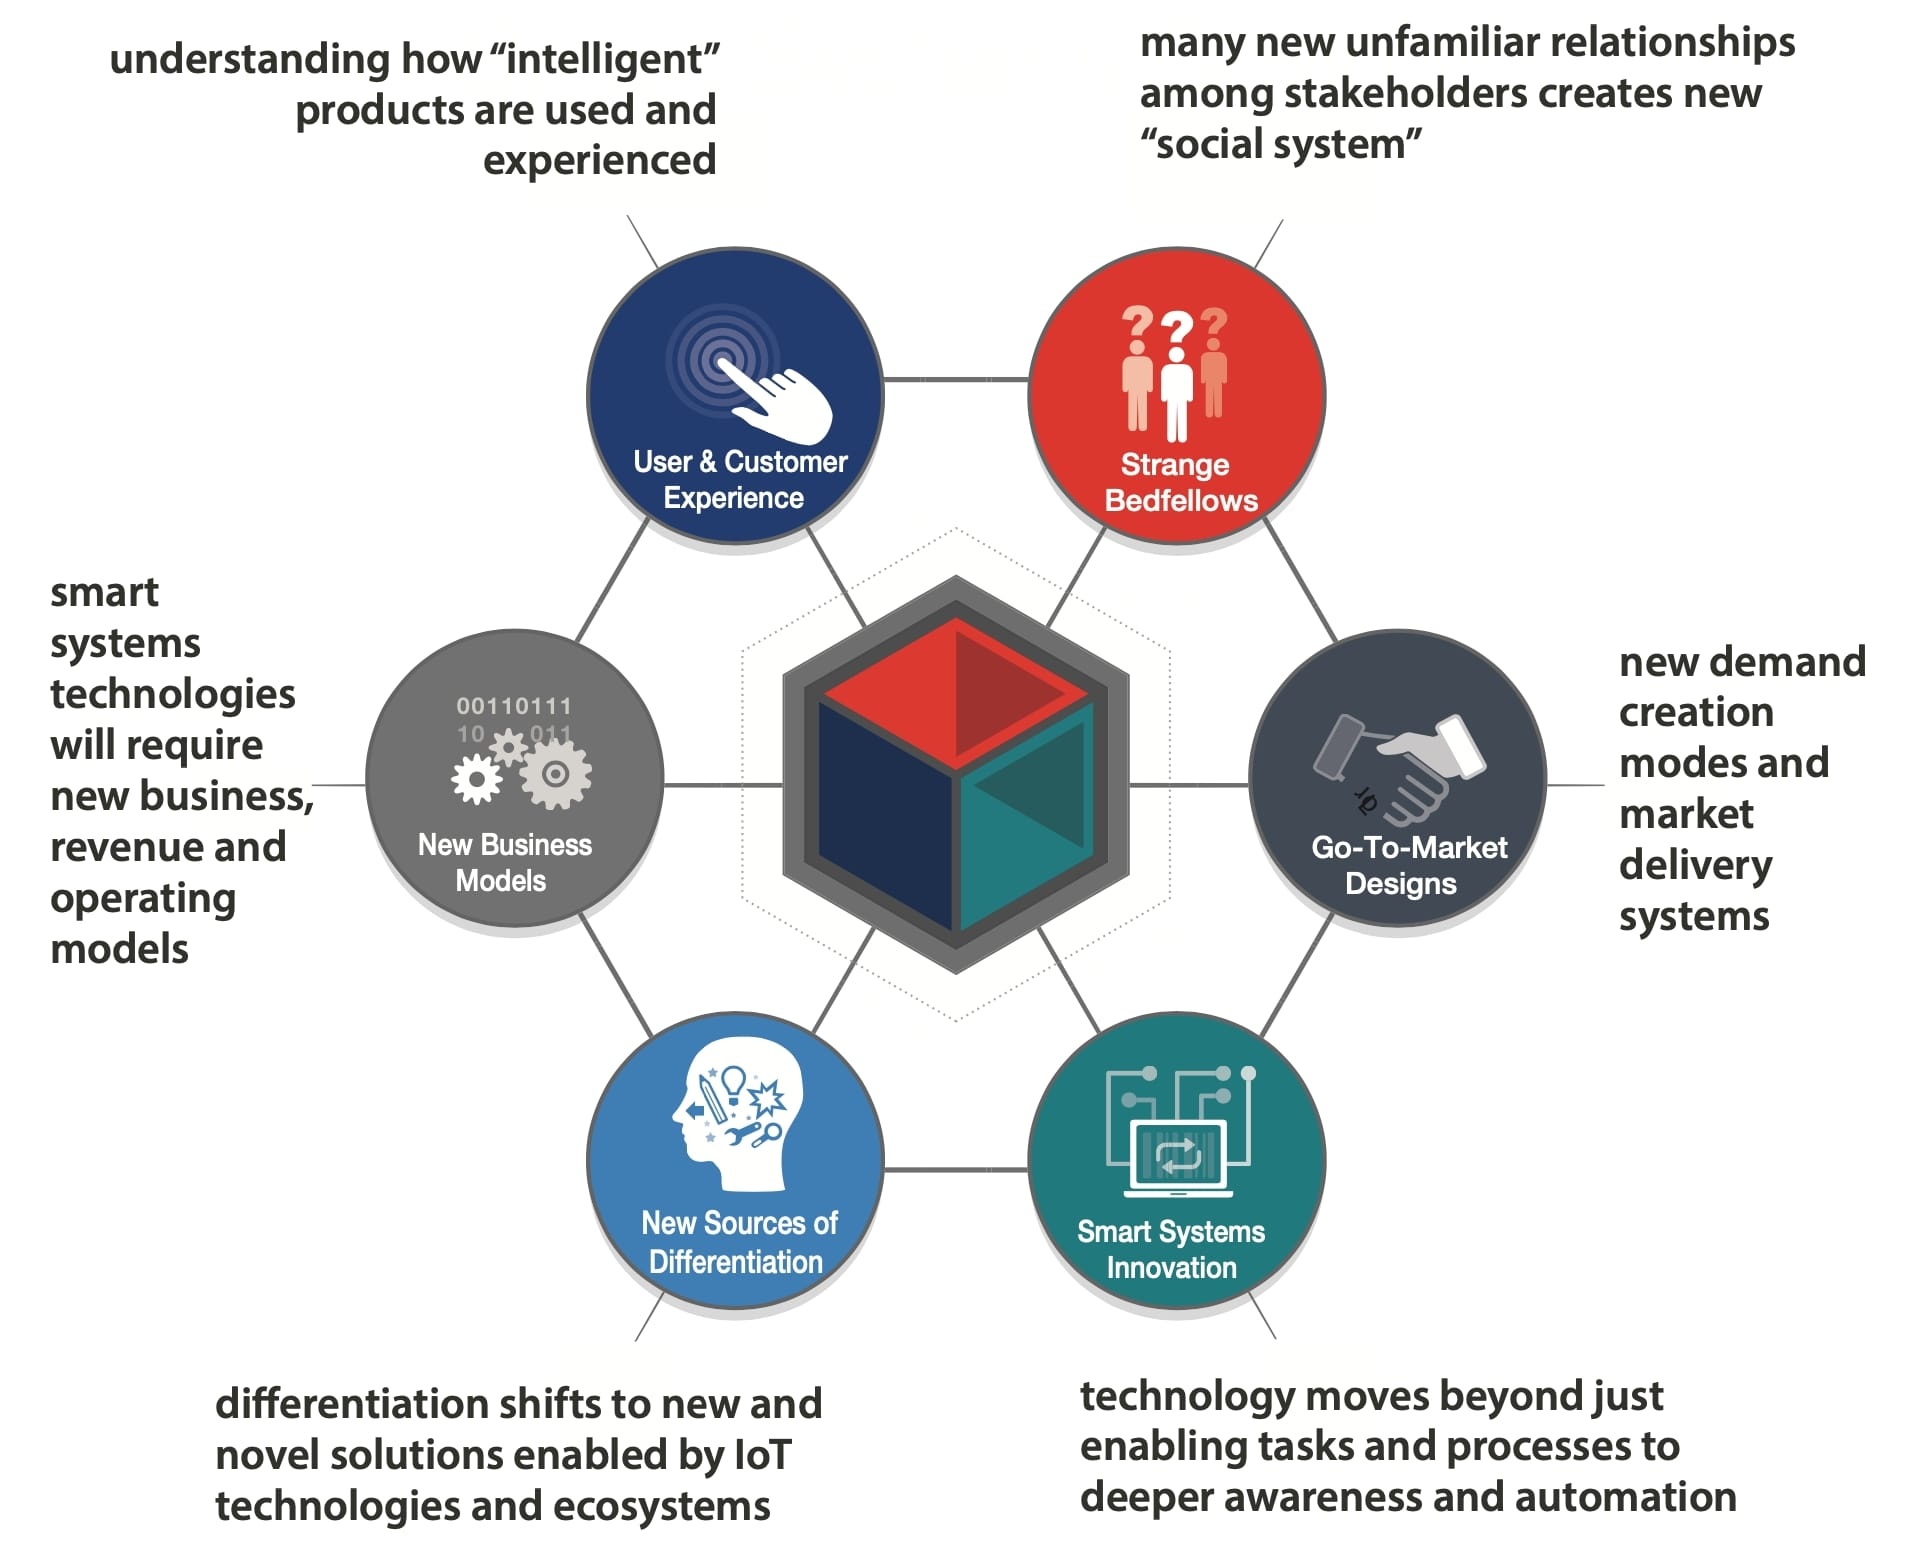 Evolving Smart Systems Growth Themes